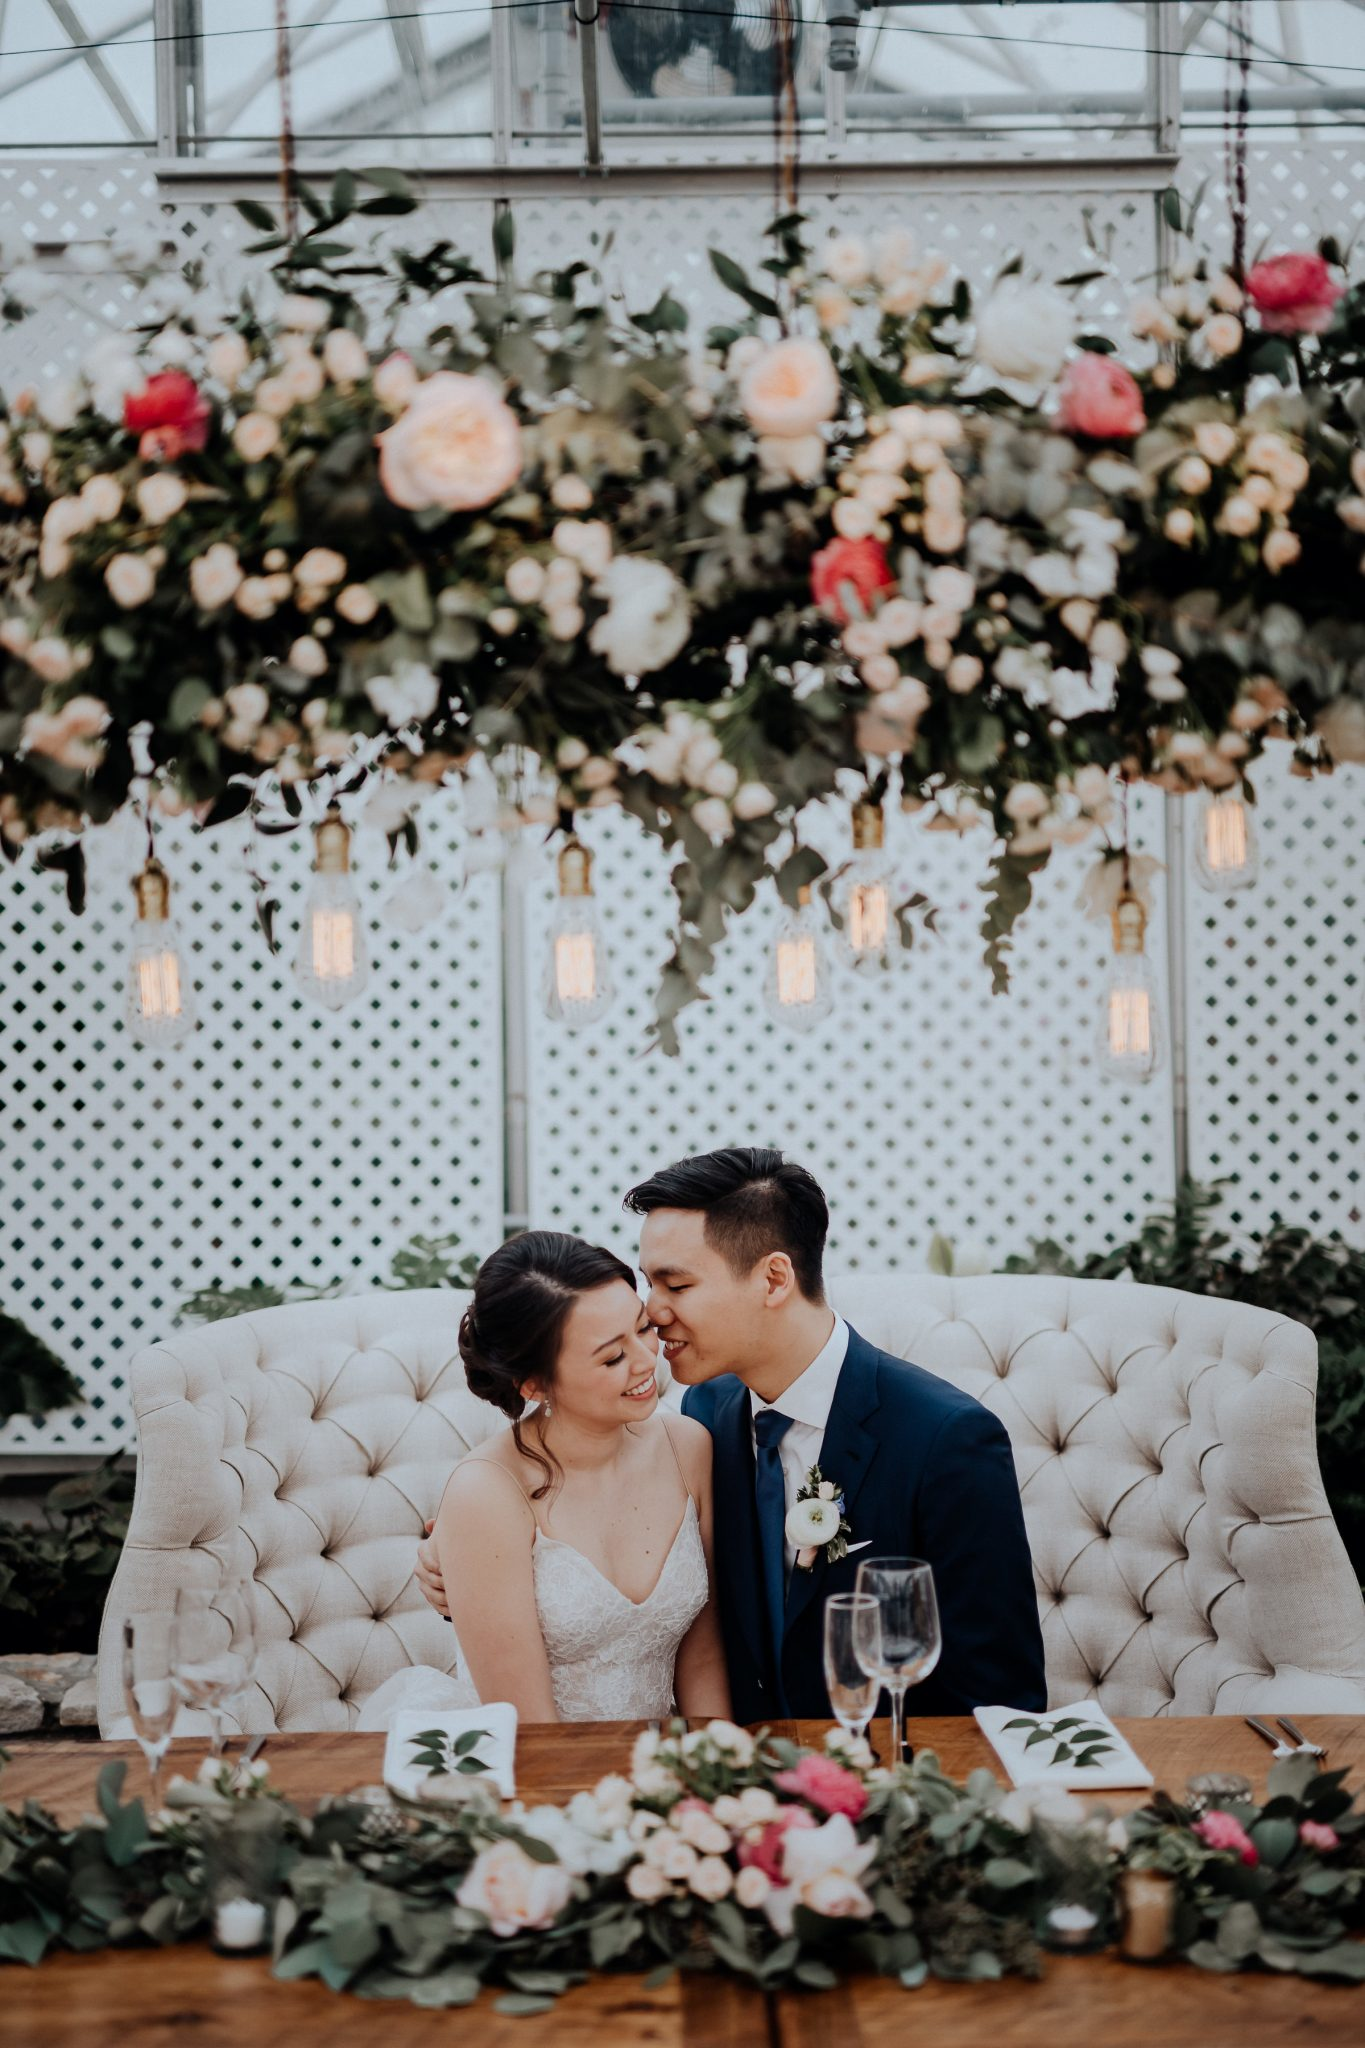 Horticulture Center Wedding with Floral Chandelier | www.thestyledbride.com